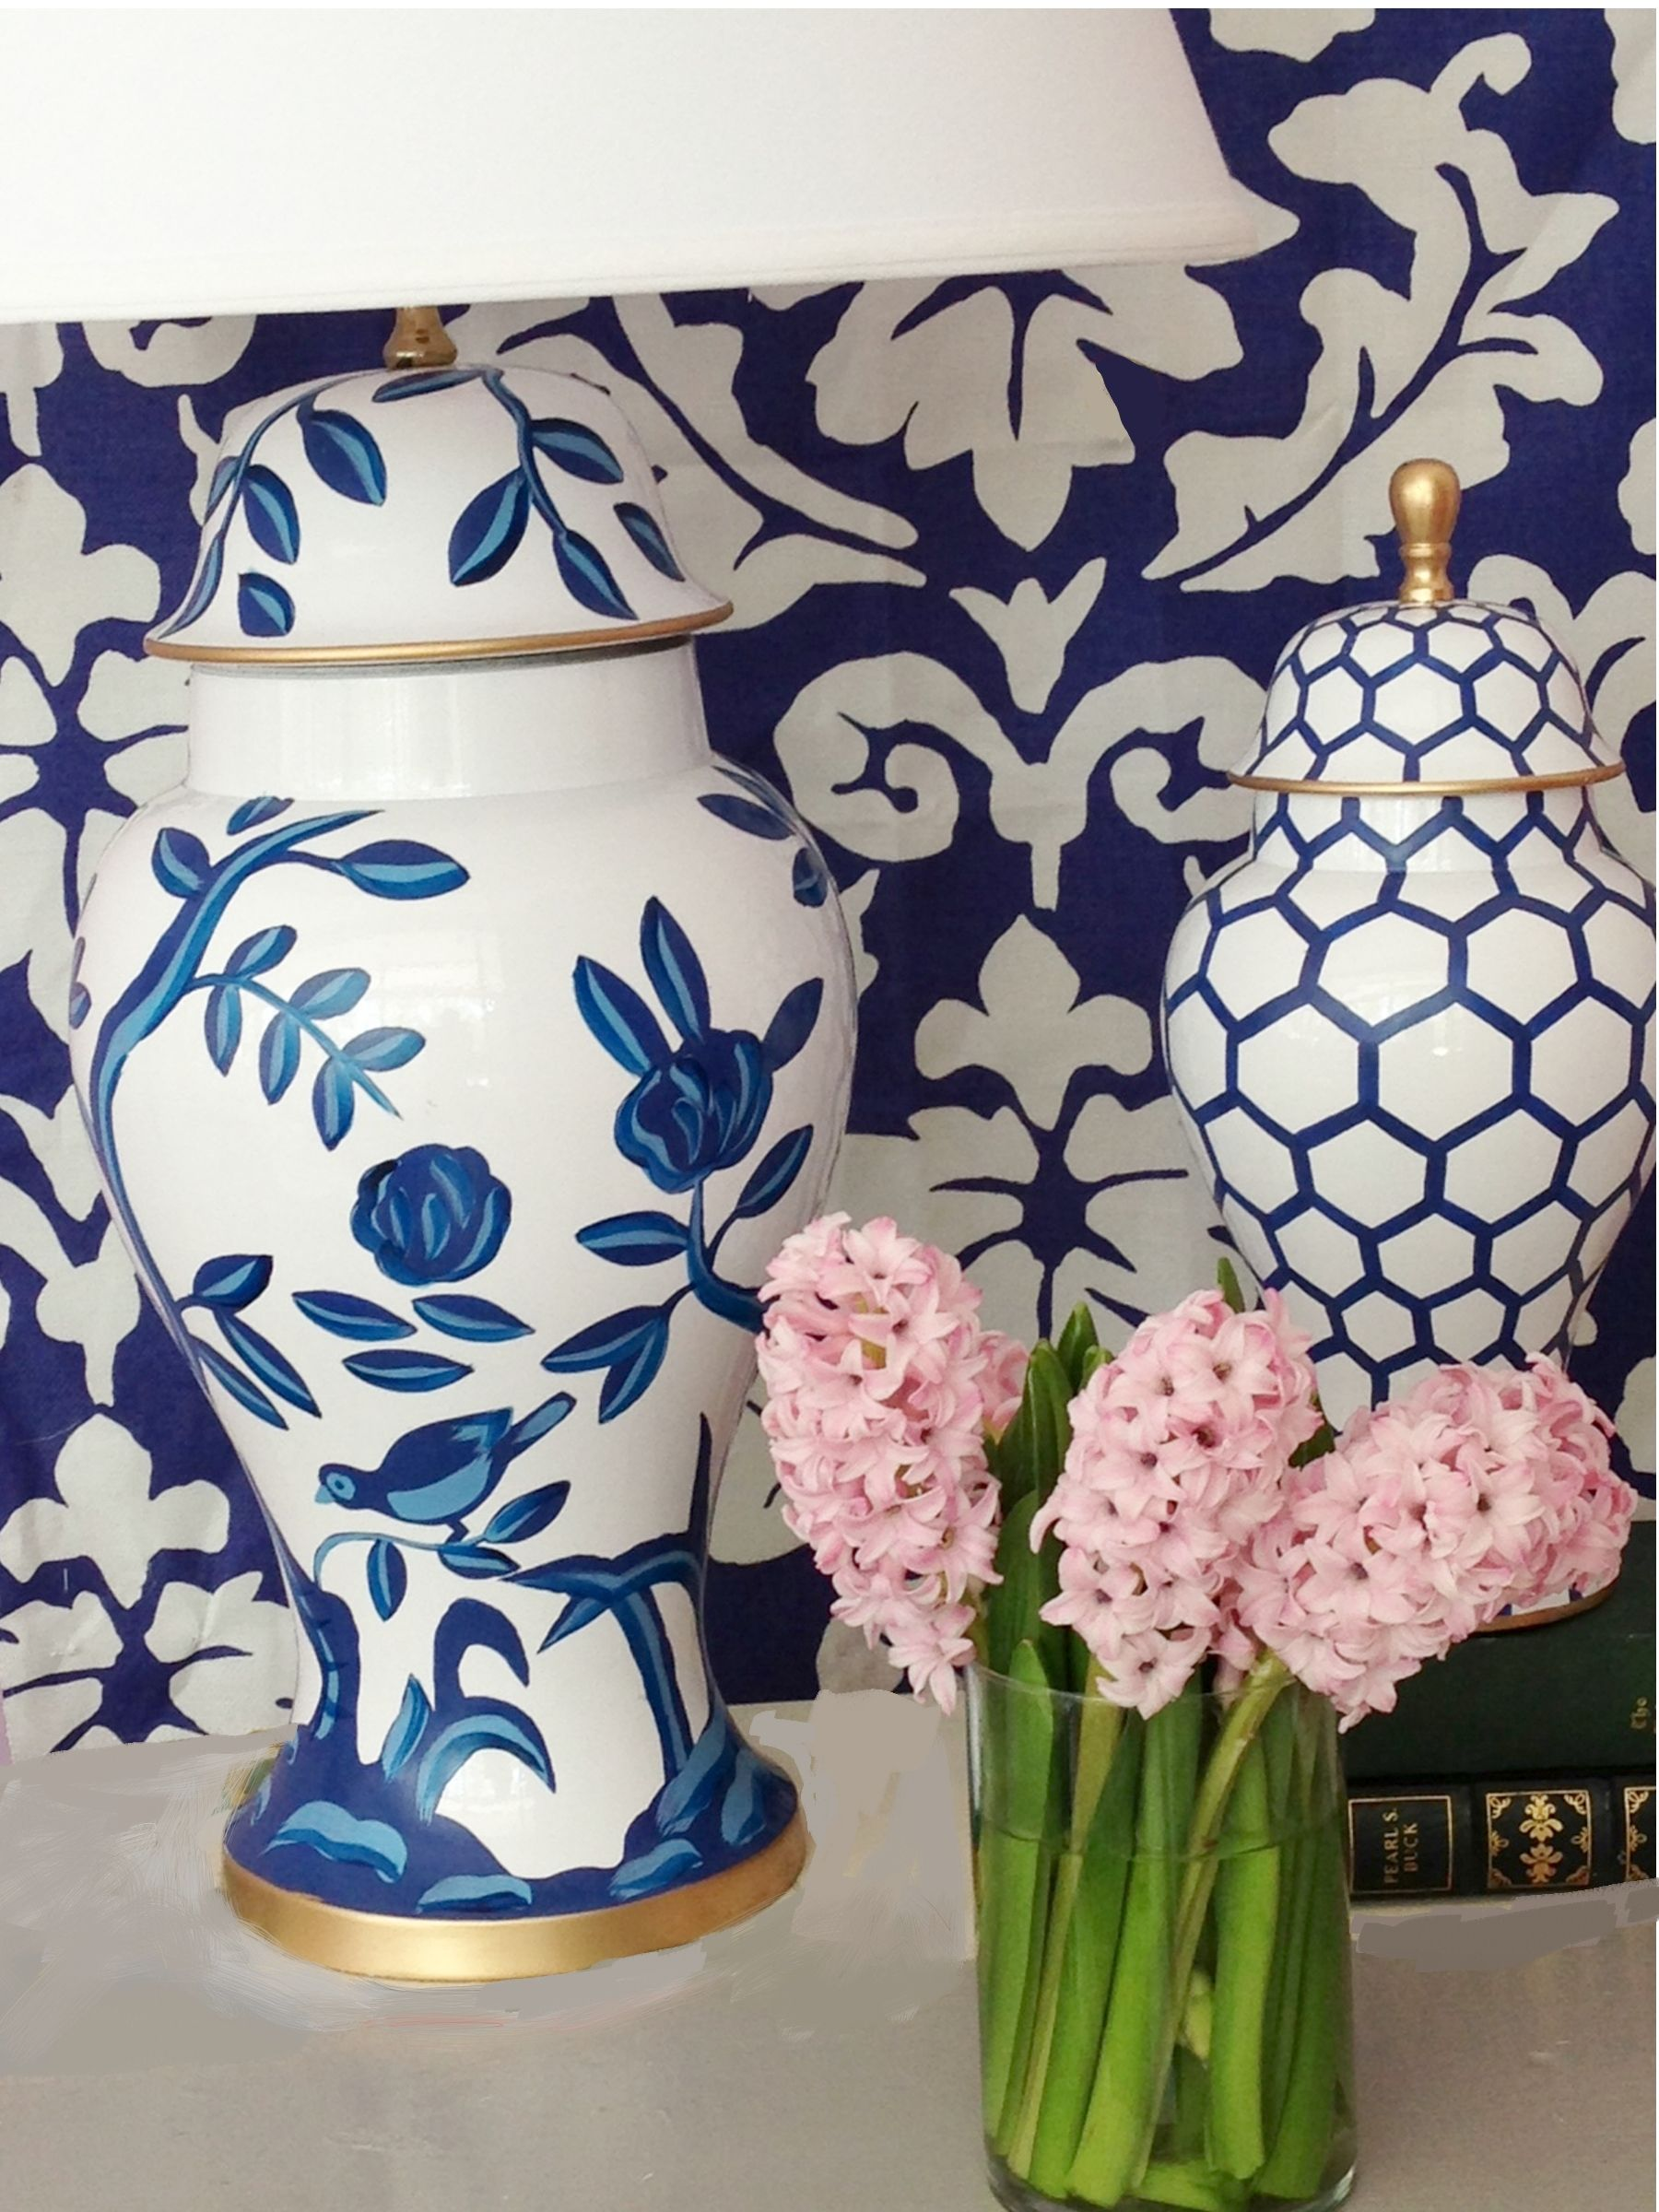 New Cliveden Lamp in Blue and White